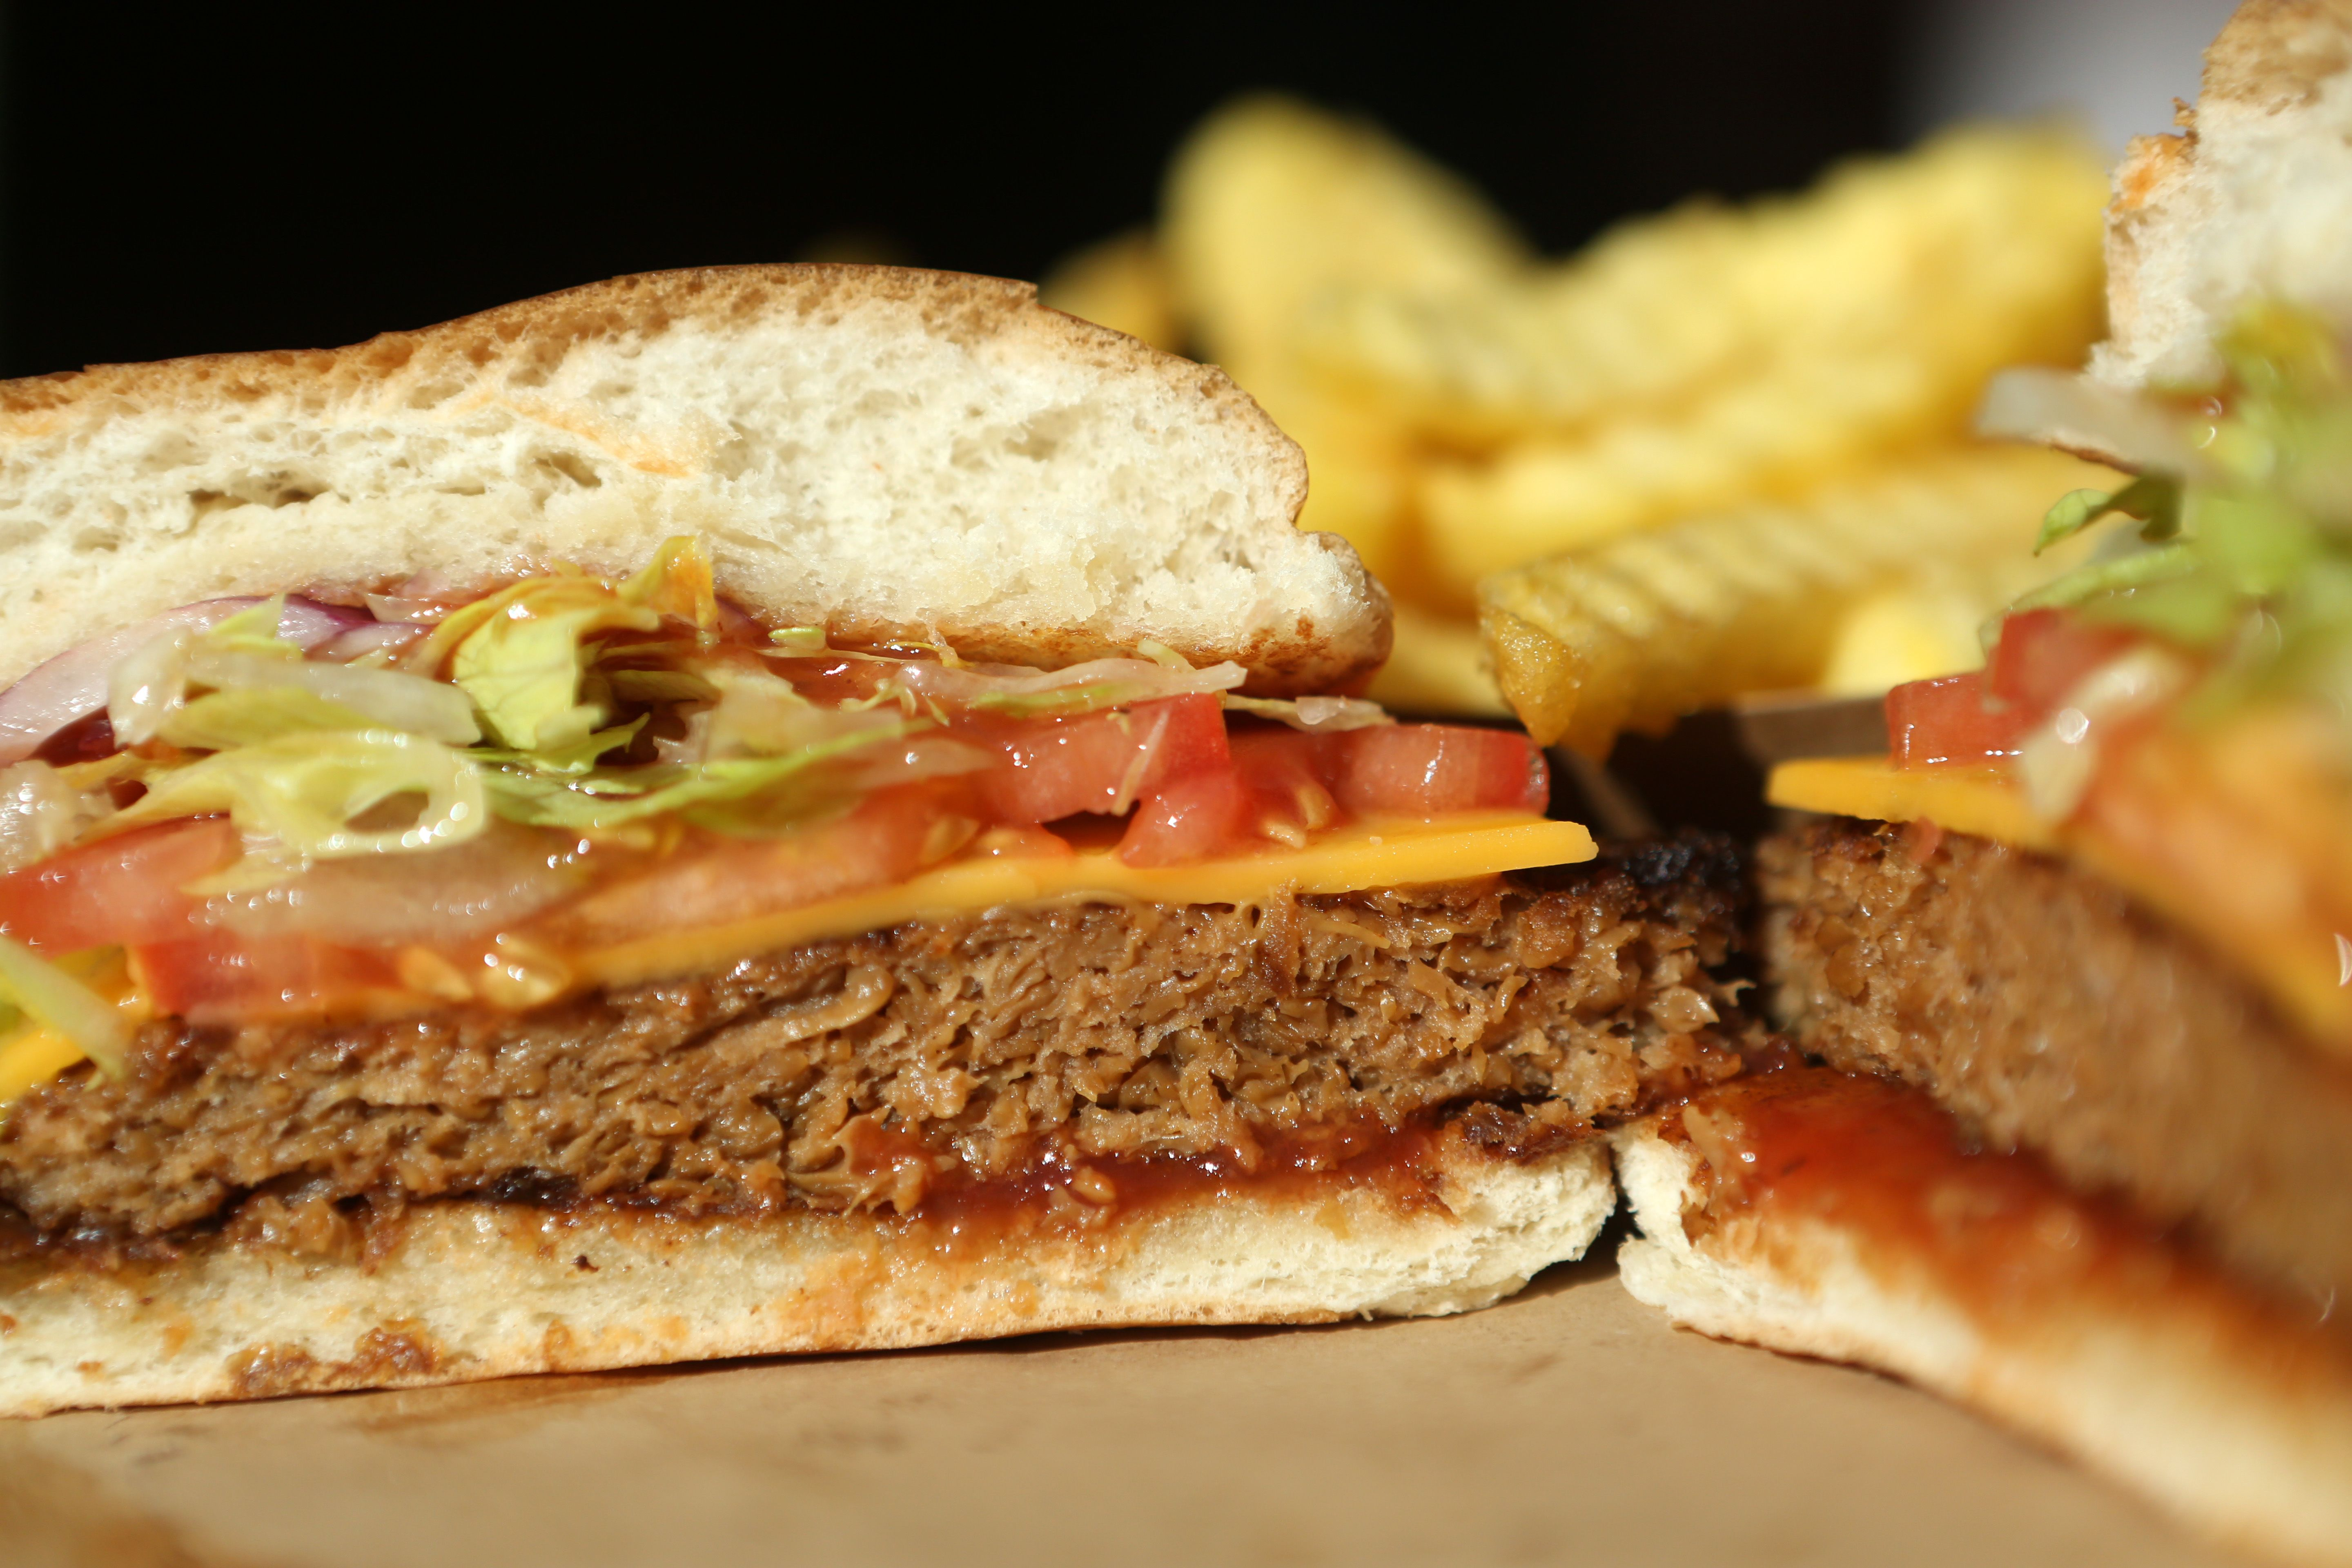 Vegan meats are invading fast food, but McDonald's is on the sidelines